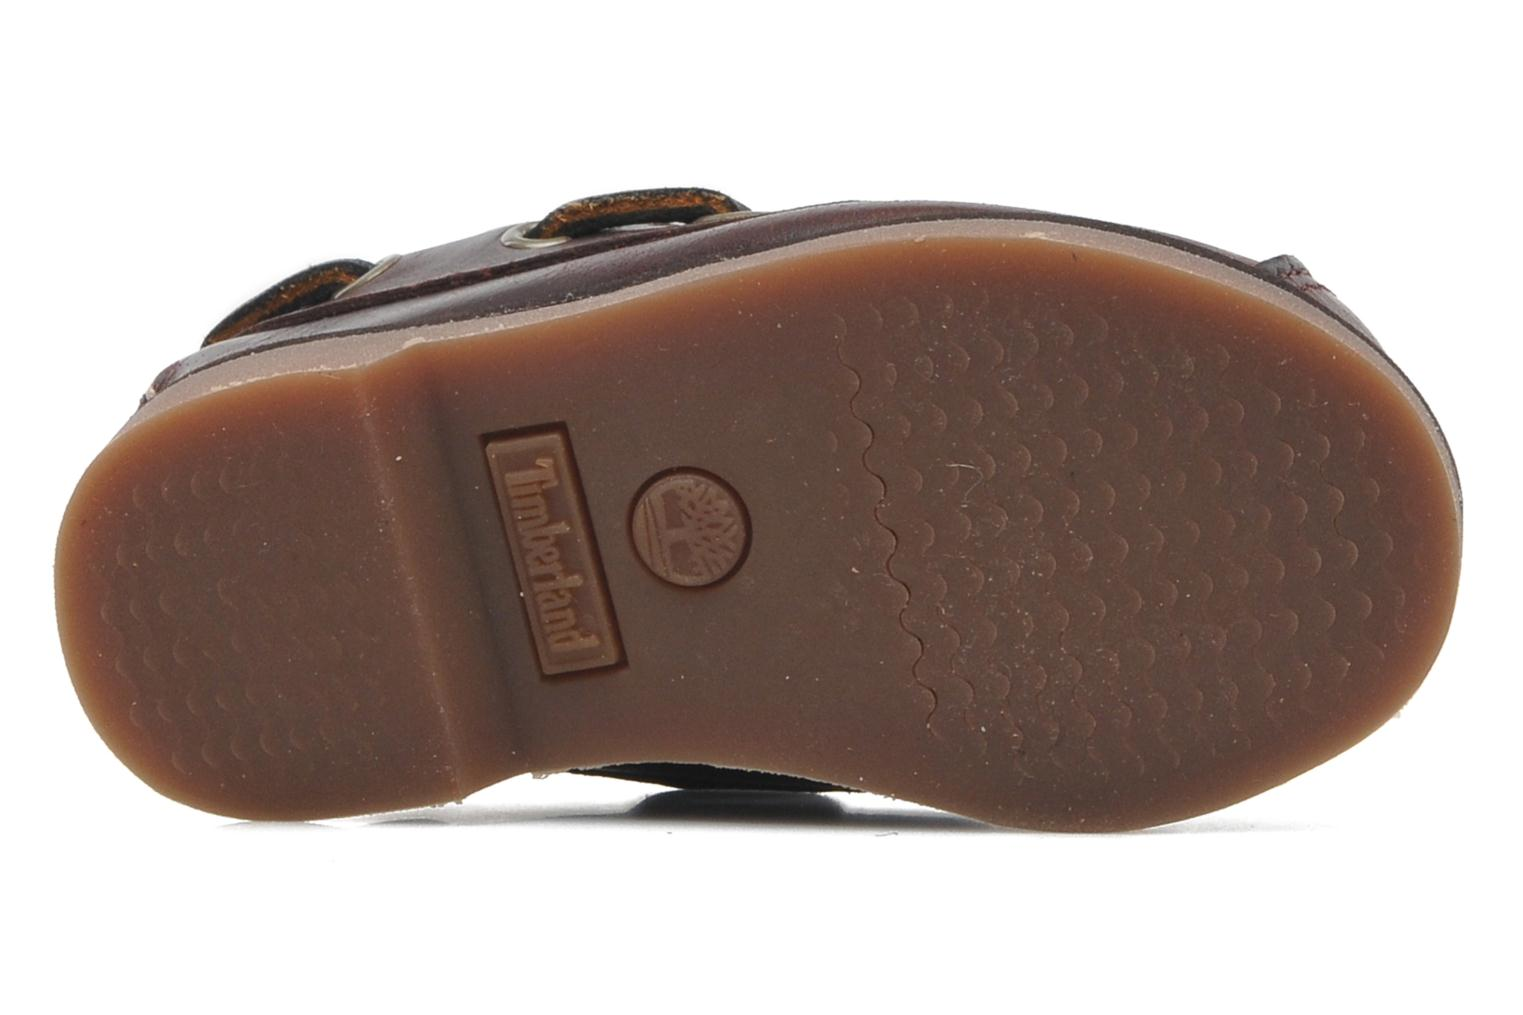 Chaussures à lacets Timberland PeakislL 2I Boat Marron vue haut